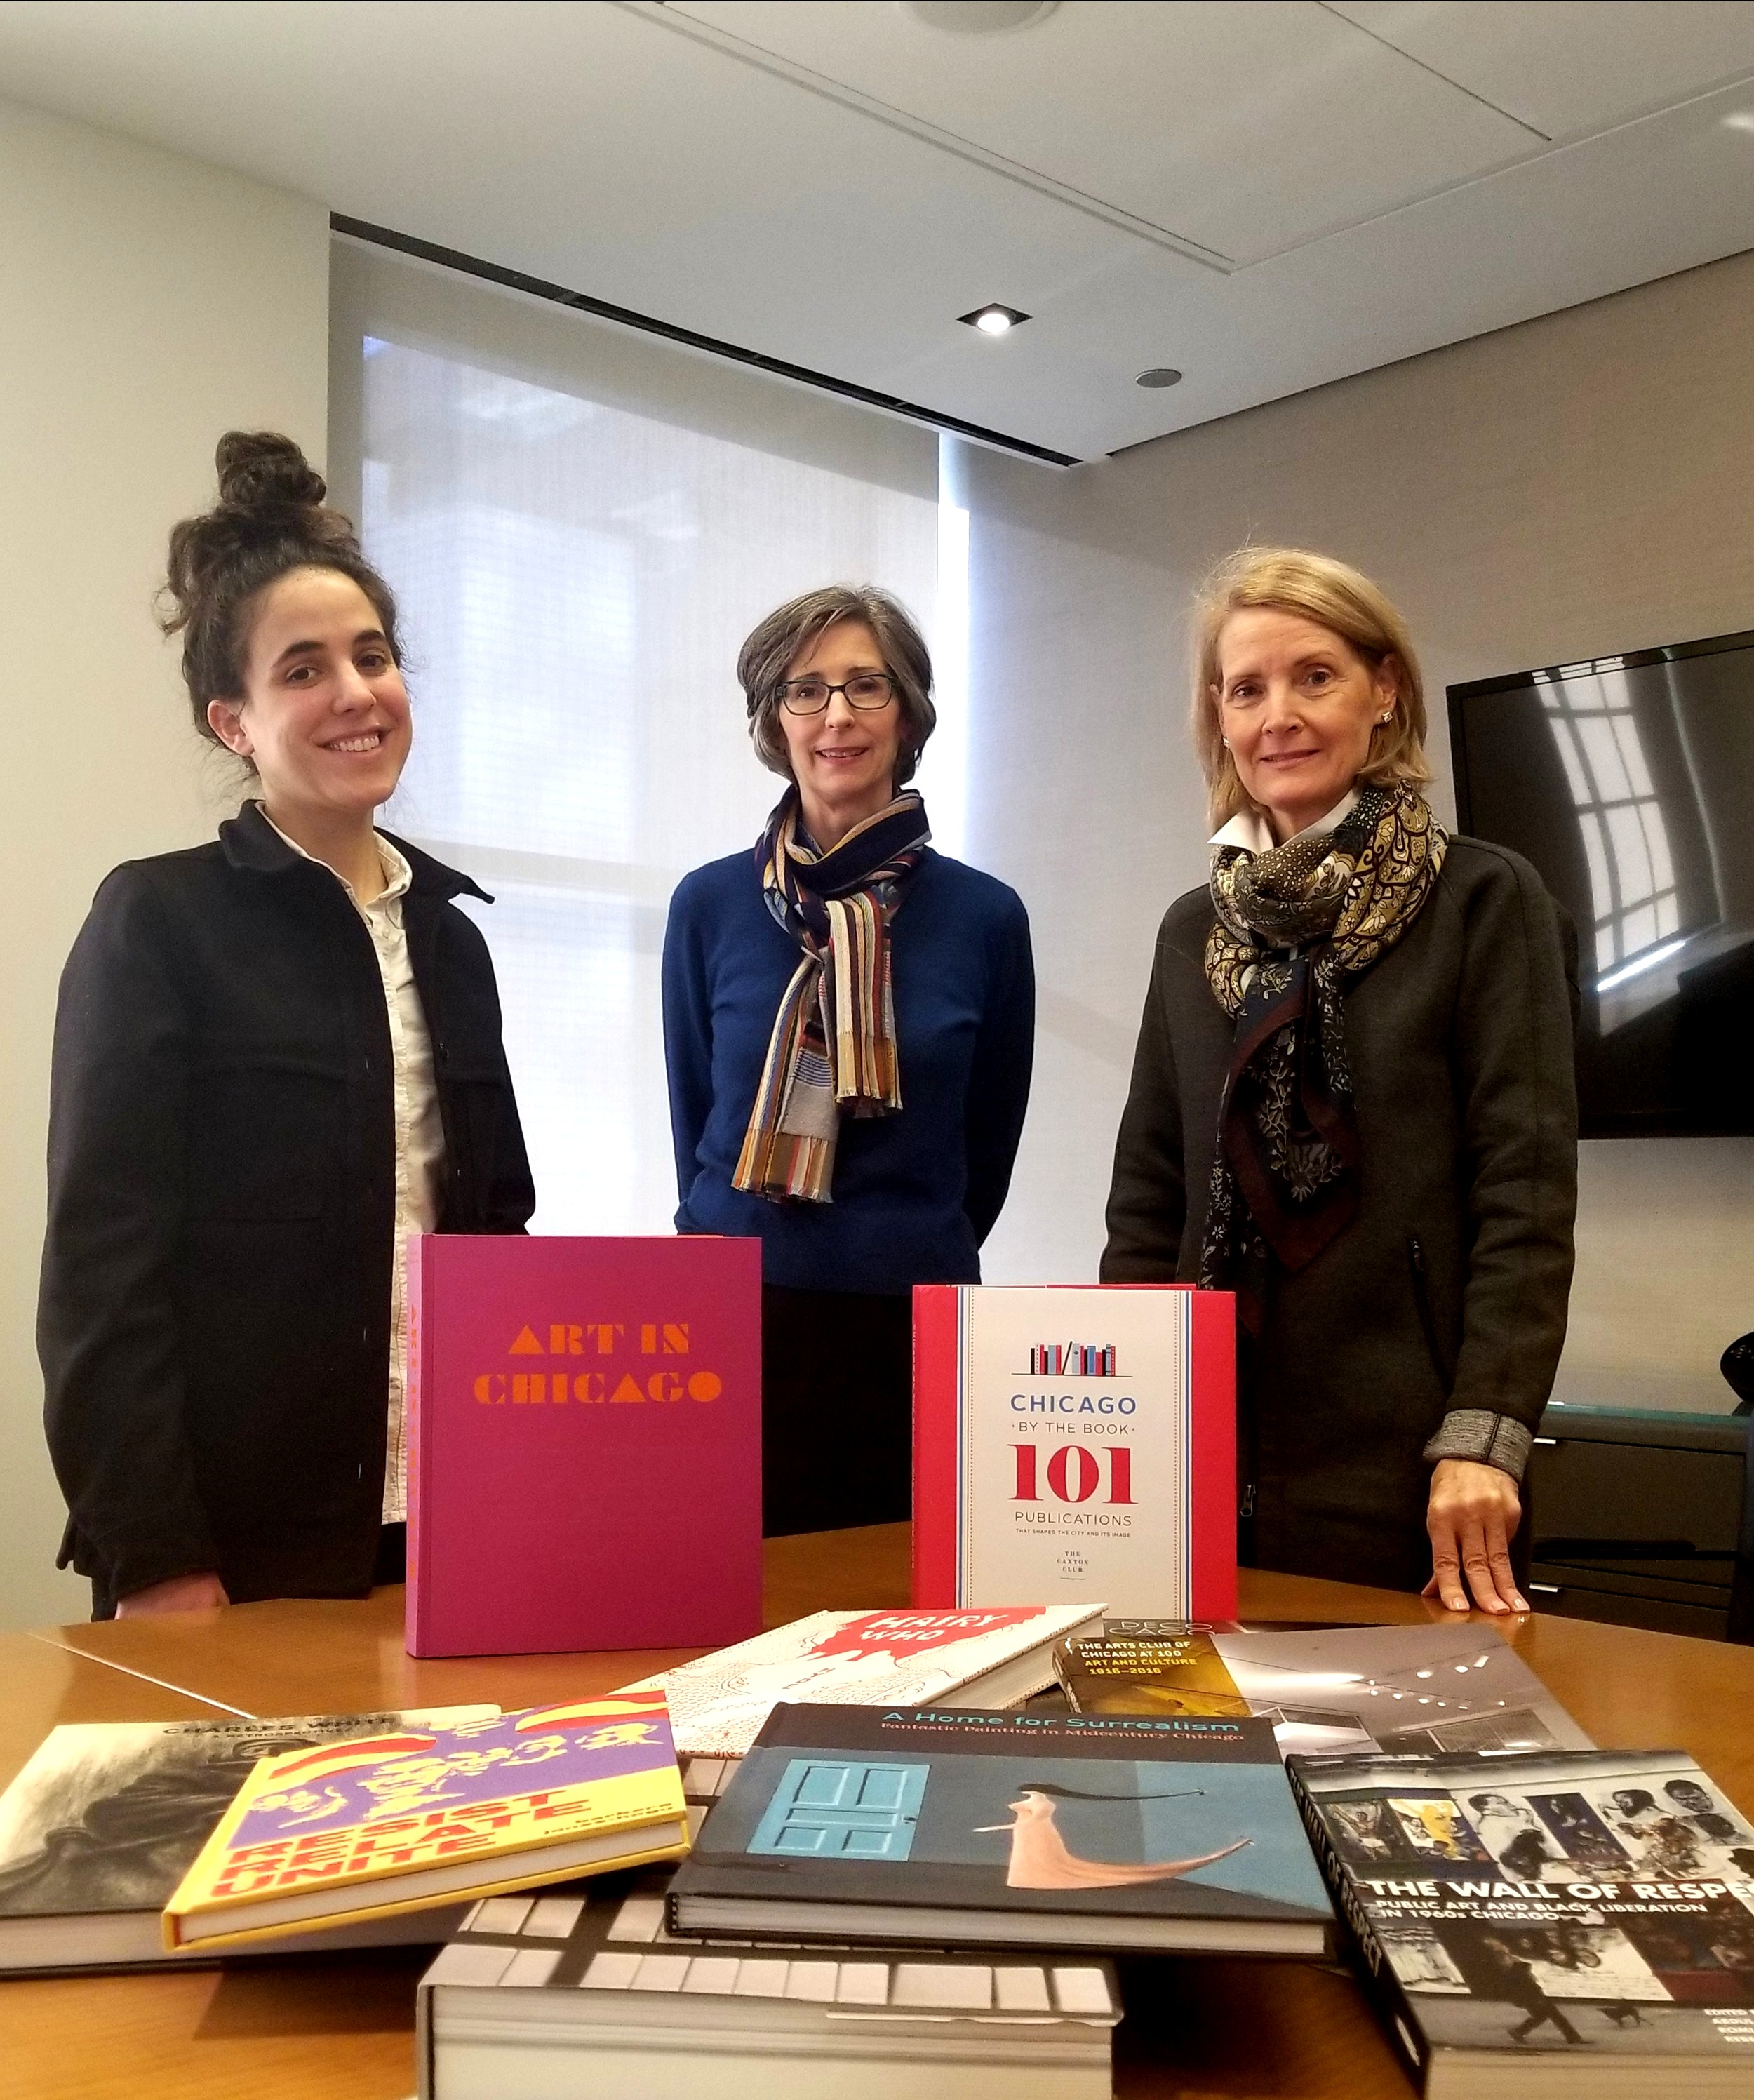 From left to right: Maggie Taft co-editor of the new book ART IN CHICAGO, Jenny Siegenthaler, program director of Education Grants & Initiatives at the Terra Foundation, and Kim Coventry, executive director of the Driehaus Foundation & co-chair of the Caxton Club's publications committee.